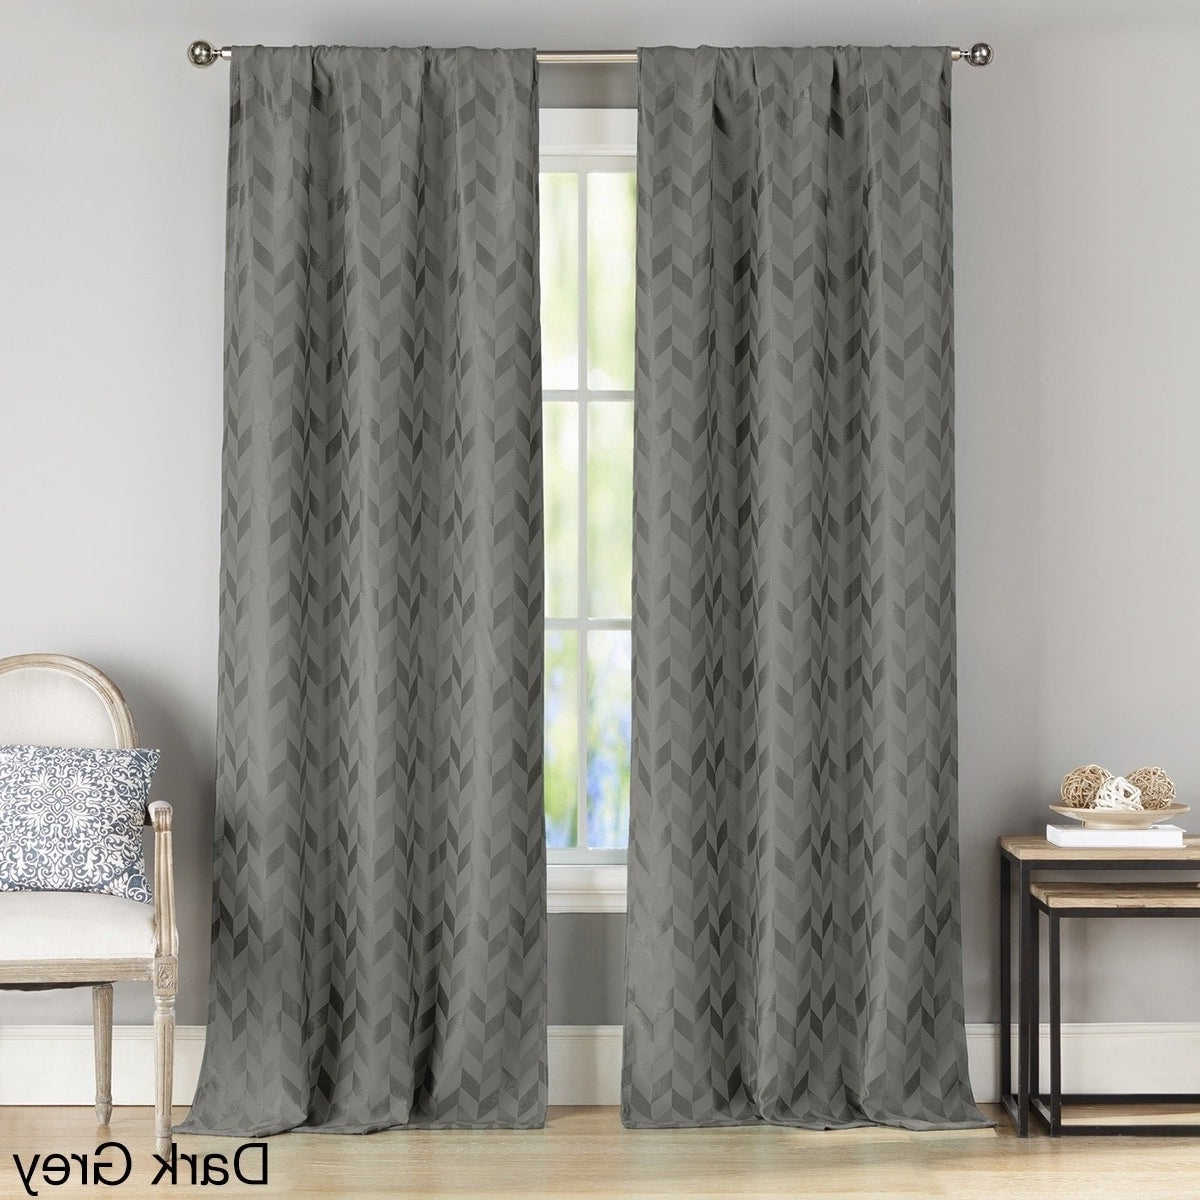 Most Popular Tuscan Thermal Backed Blackout Curtain Panel Pairs Throughout Duck River Joyce Metallic Blackout Curtain Panel Pair (View 12 of 20)